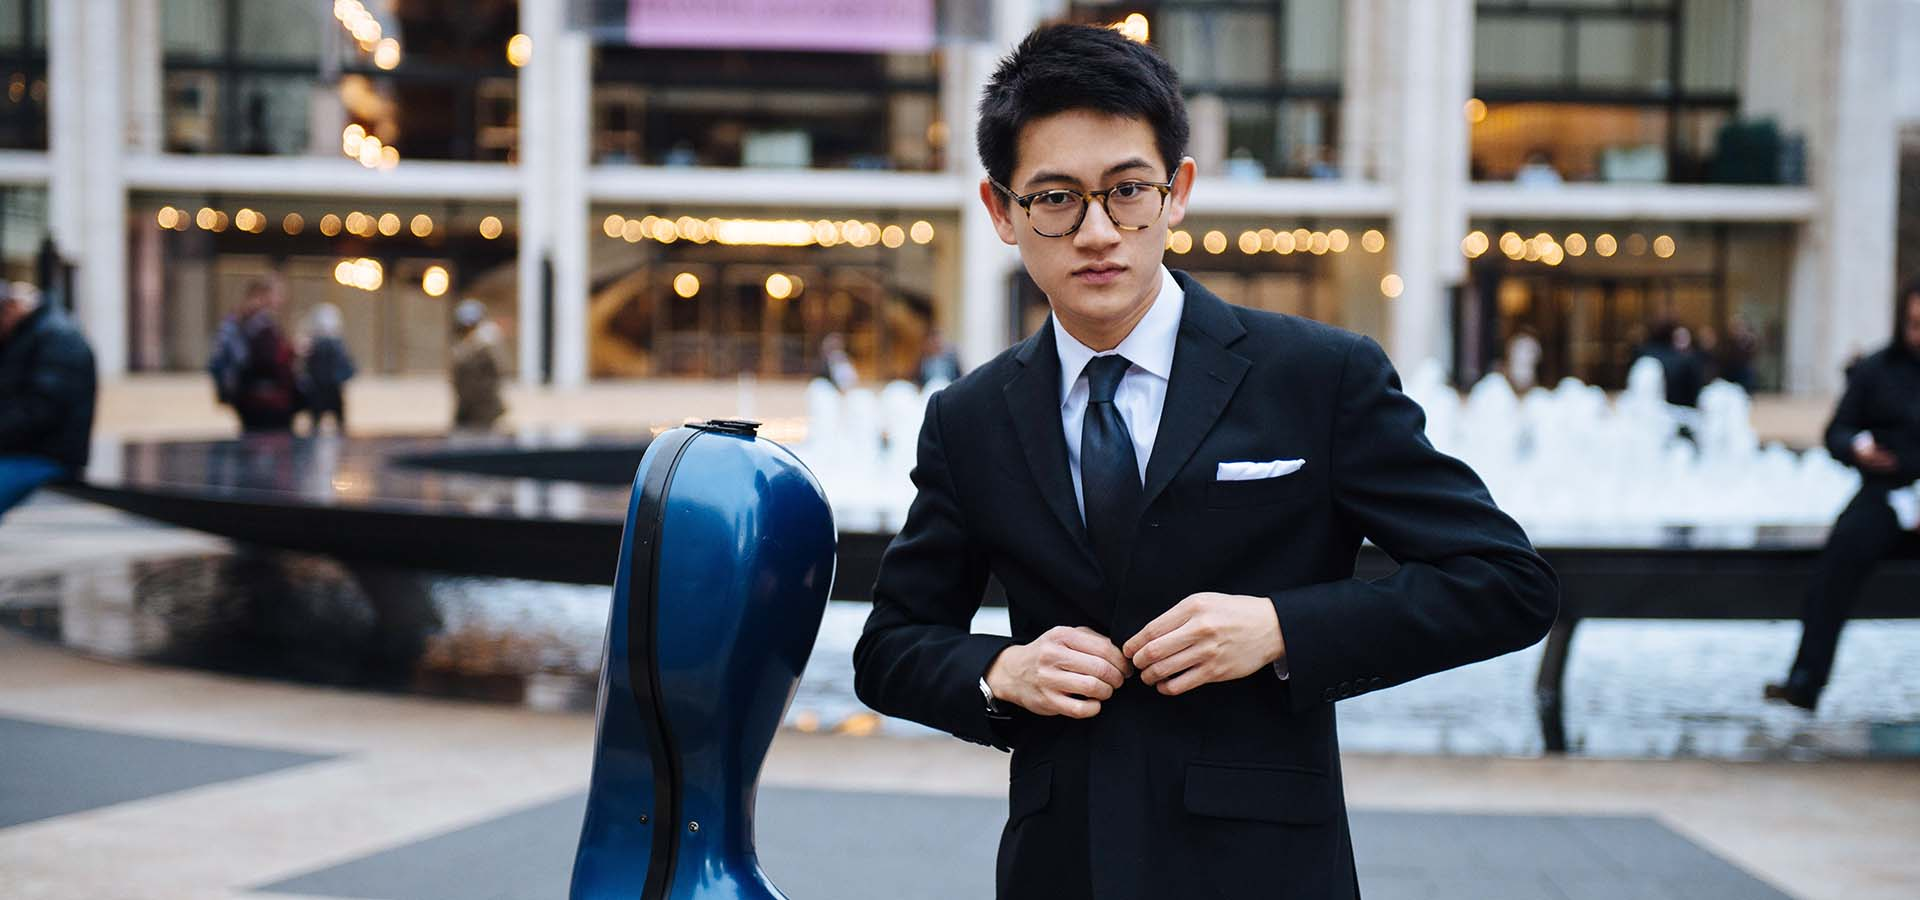 Asian cellist buttoning his coat